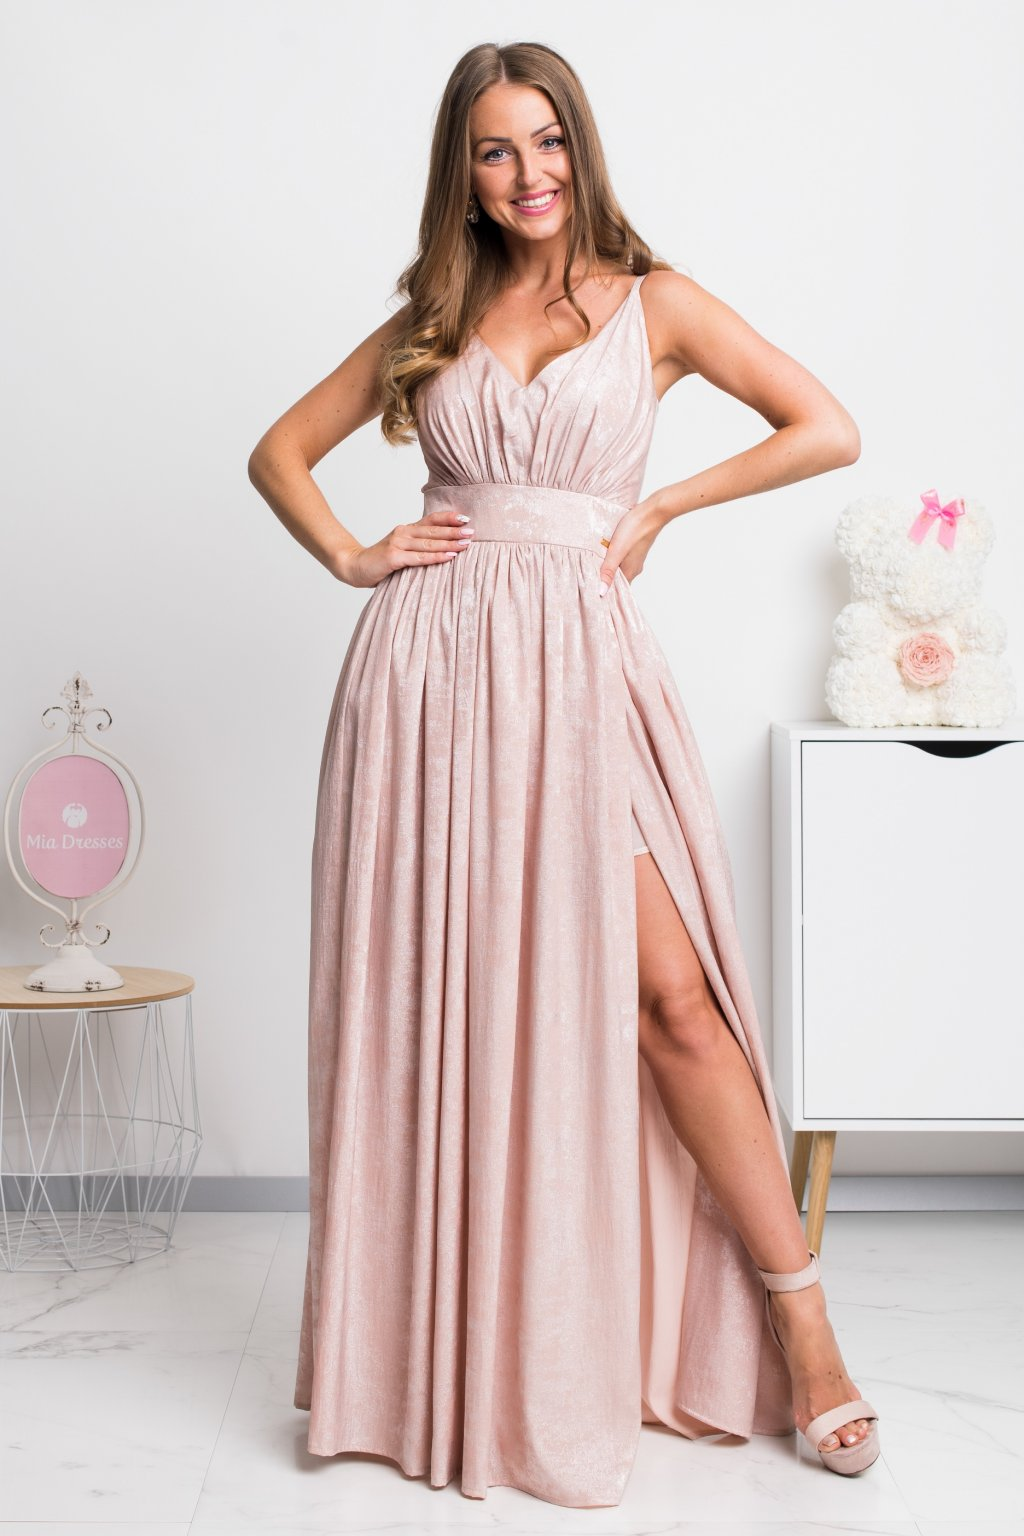 Gold shine formal dress